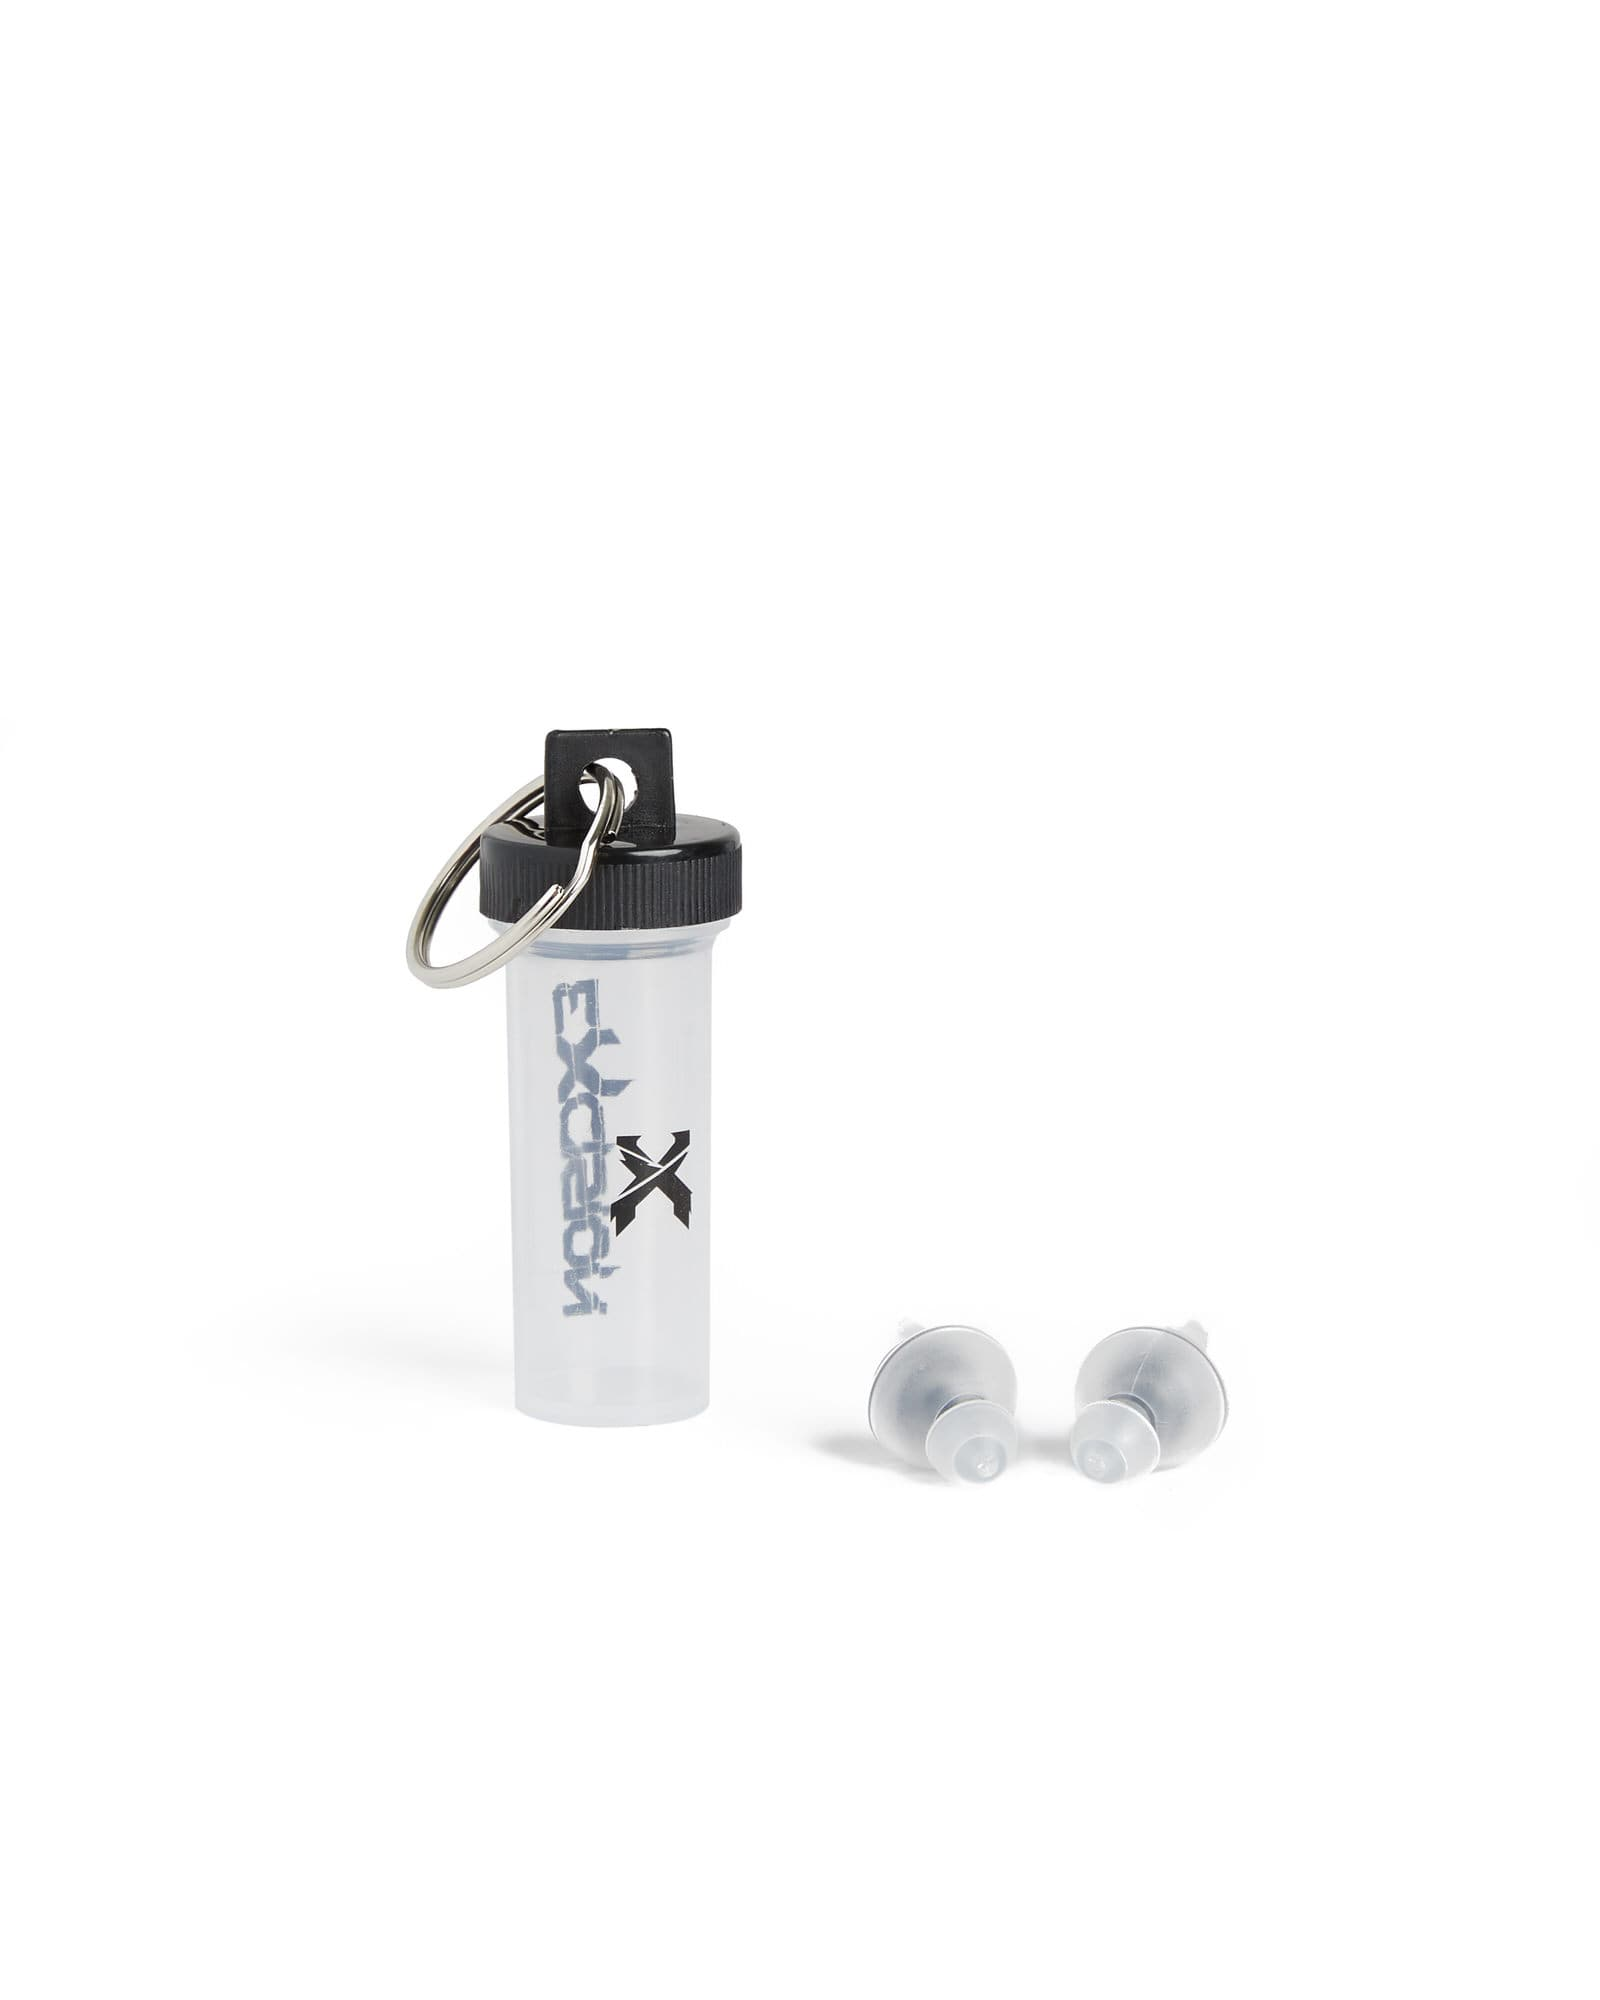 Excision High Fidelity Ear Plugs